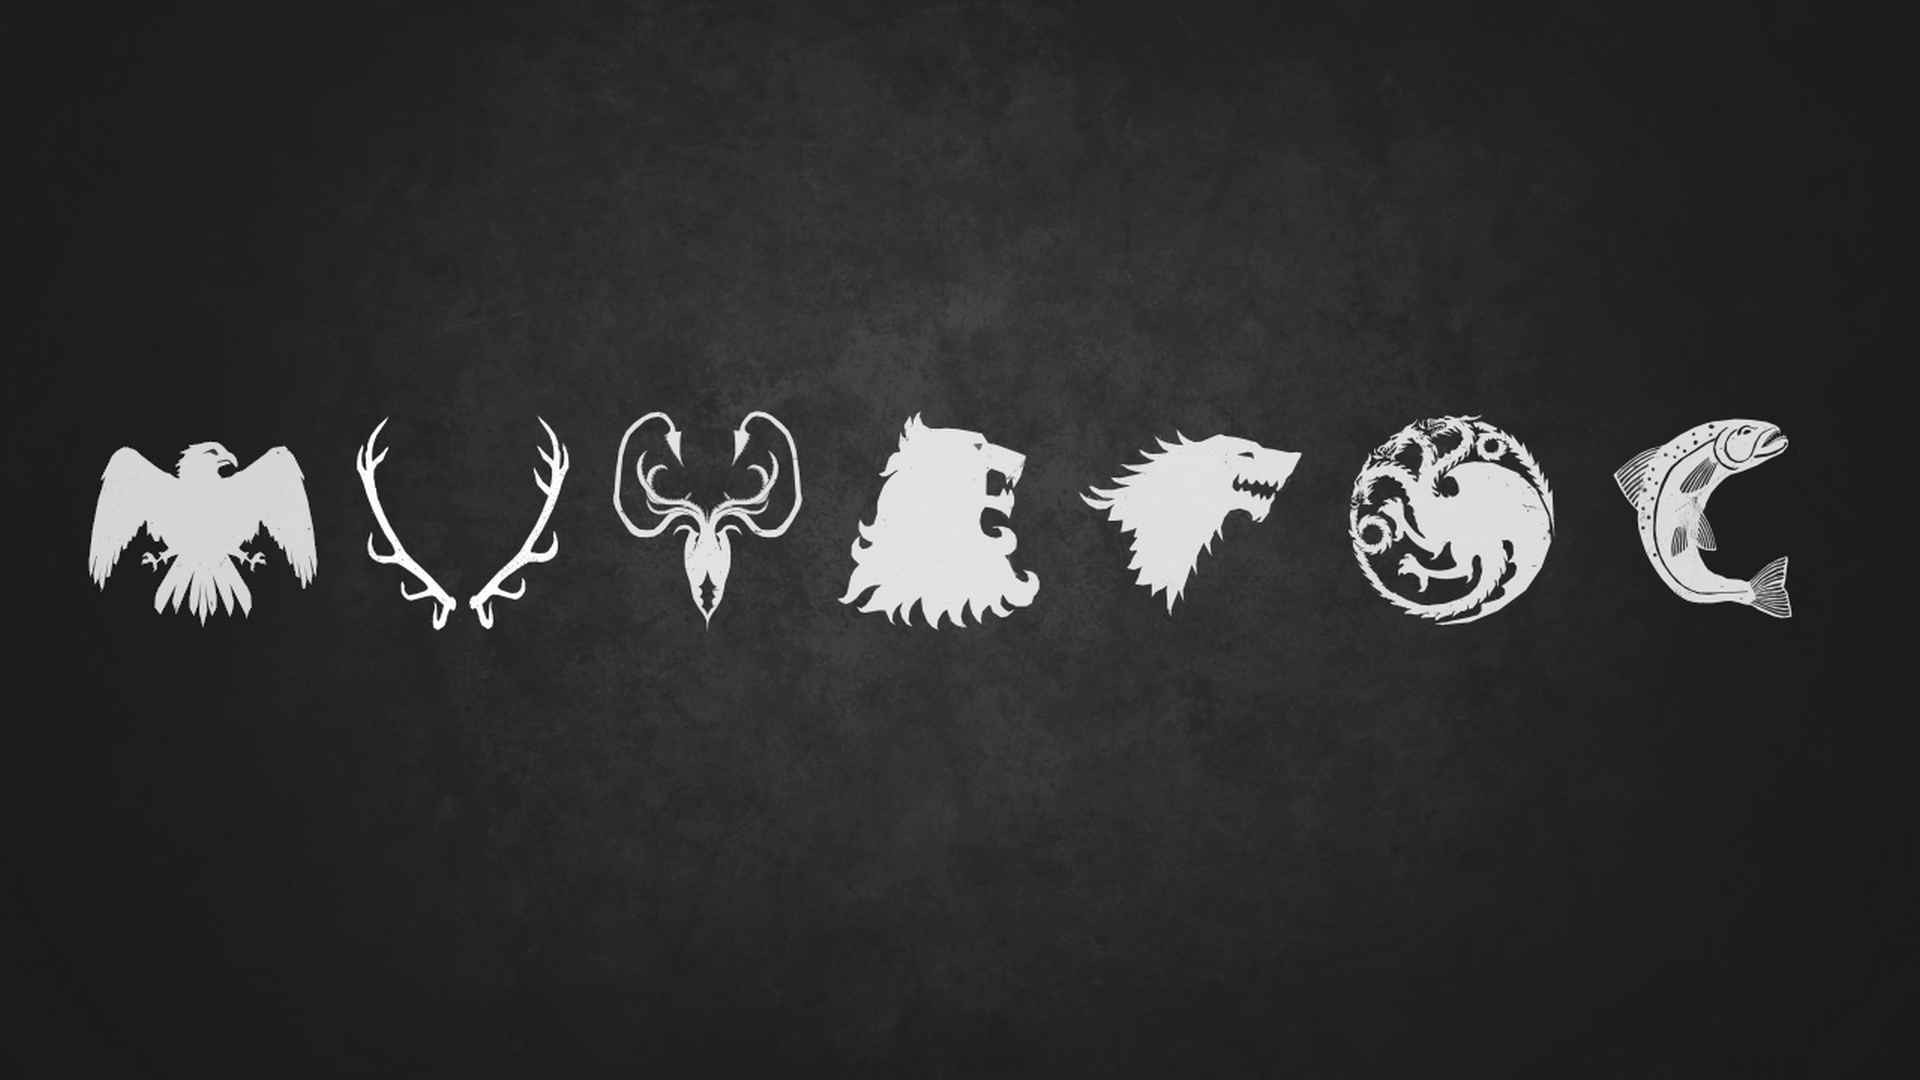 Game Of Thrones Wallpaper Android: 50+ Game Of Thrones Wallpapers ·① Download Free Awesome